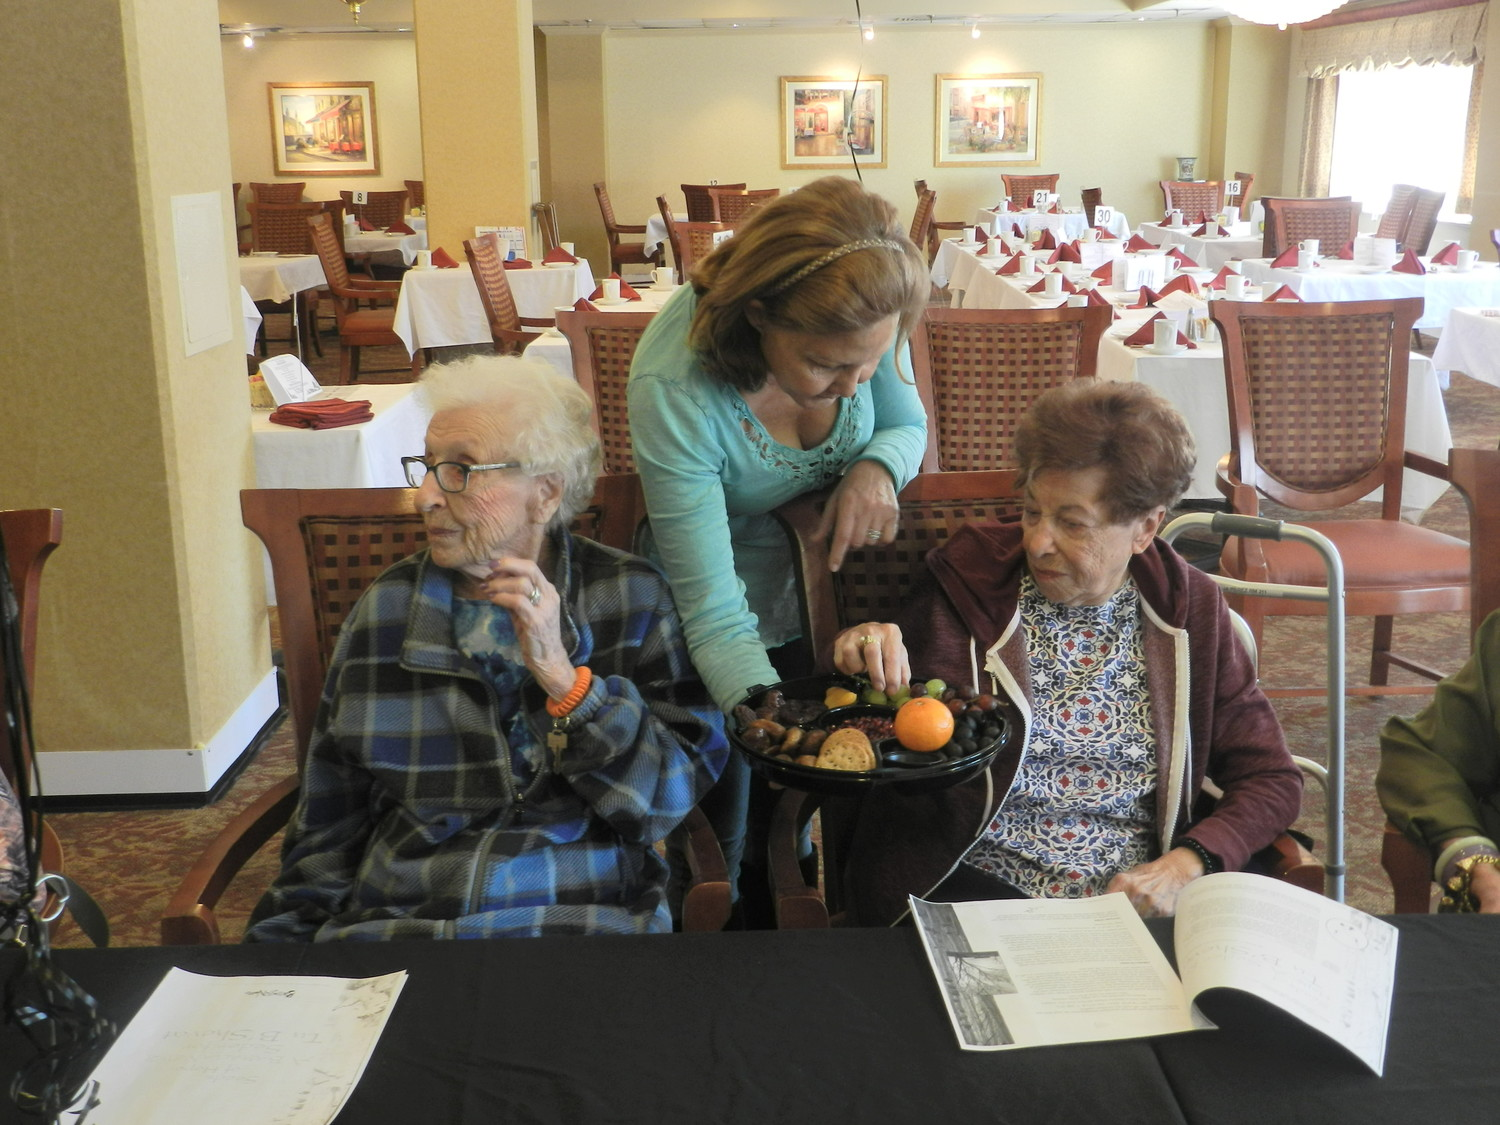 Victoria Wexler, offered resident Marie Galluccio a plate full of fruits and grains that symbolized the harvests of Tu B'Shevat.